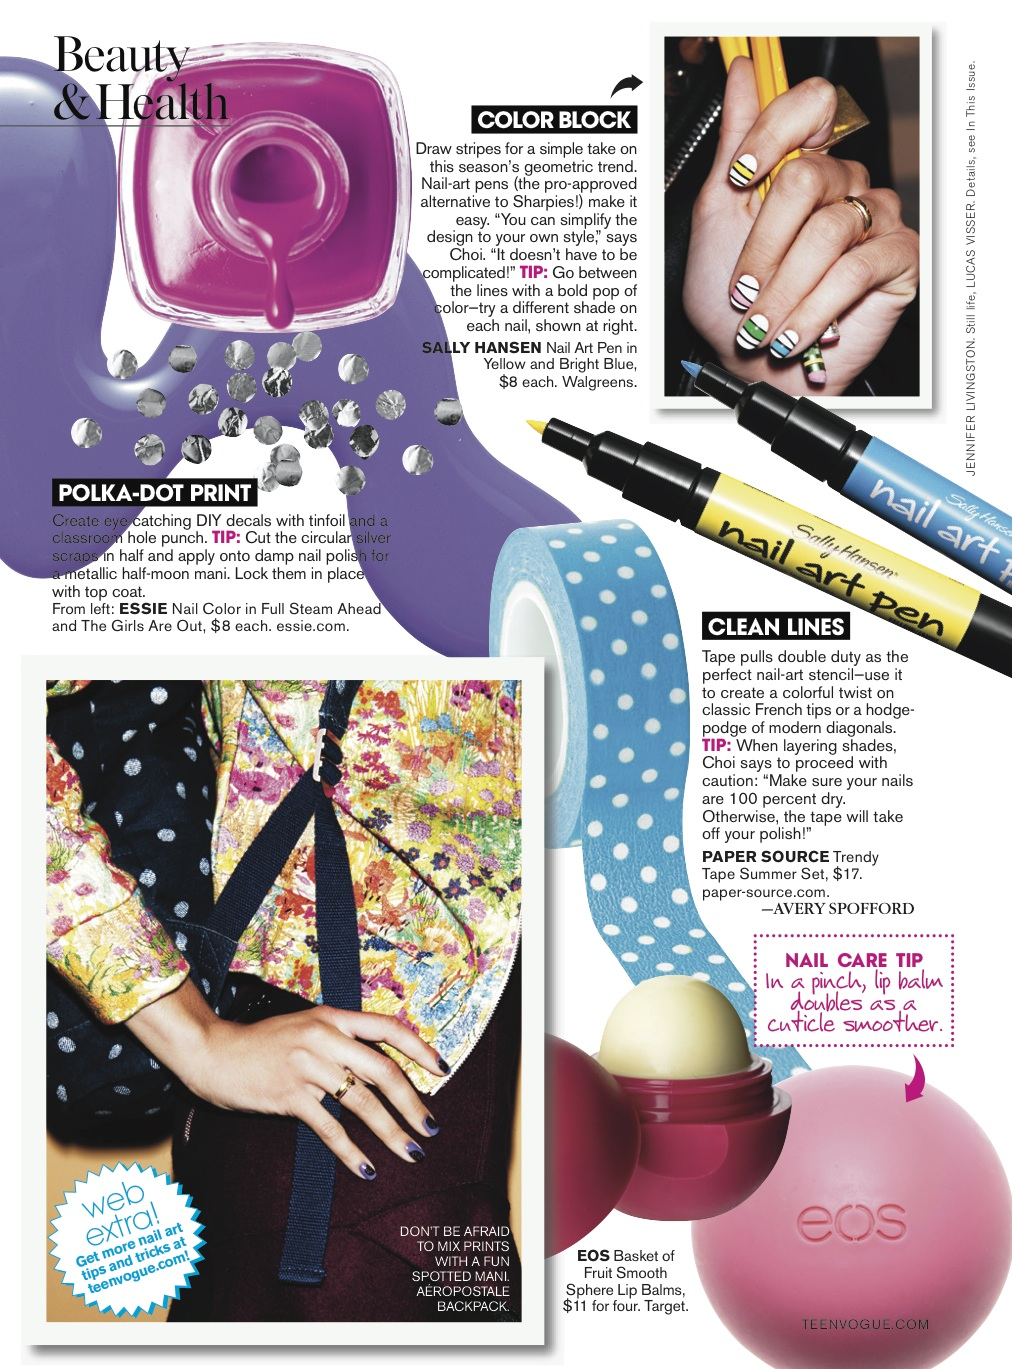 Teen Vogue: Beauty: Nail Files – Avery Spofford